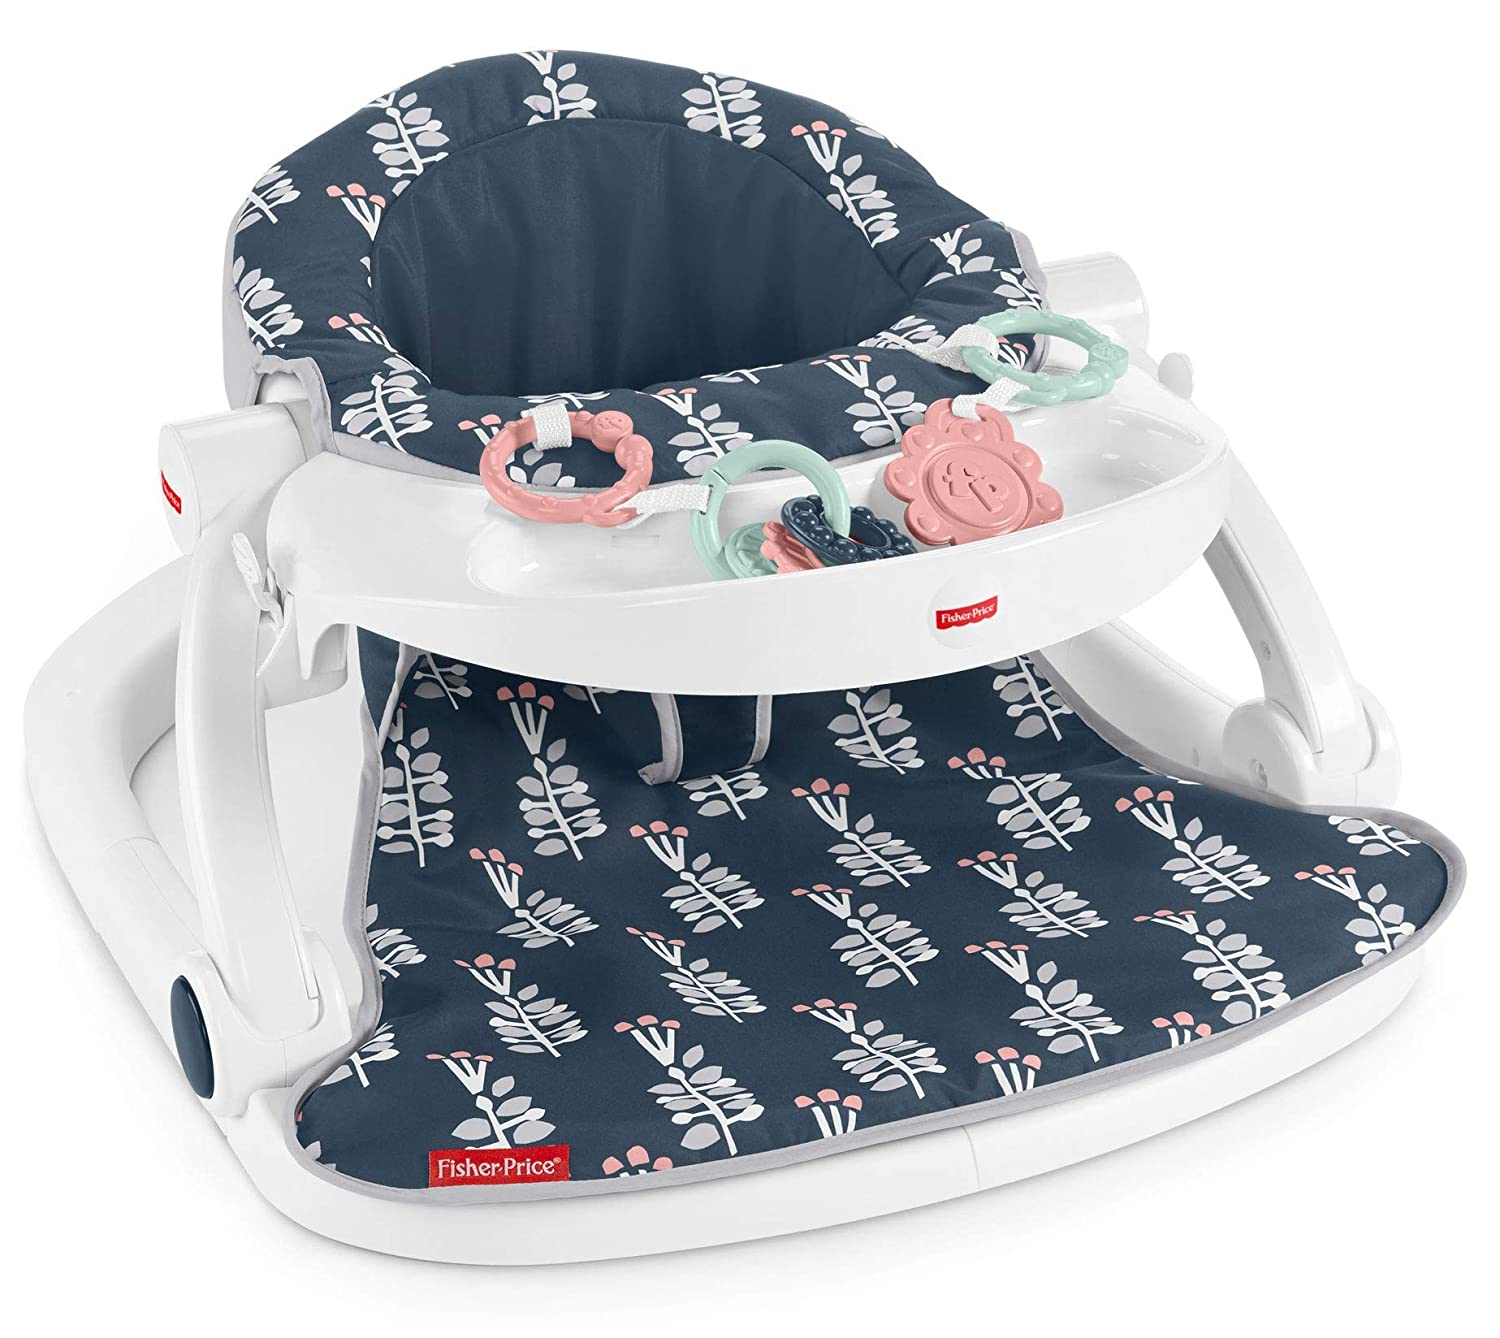 Top 7 best infant floor seat|Best baby chair 14